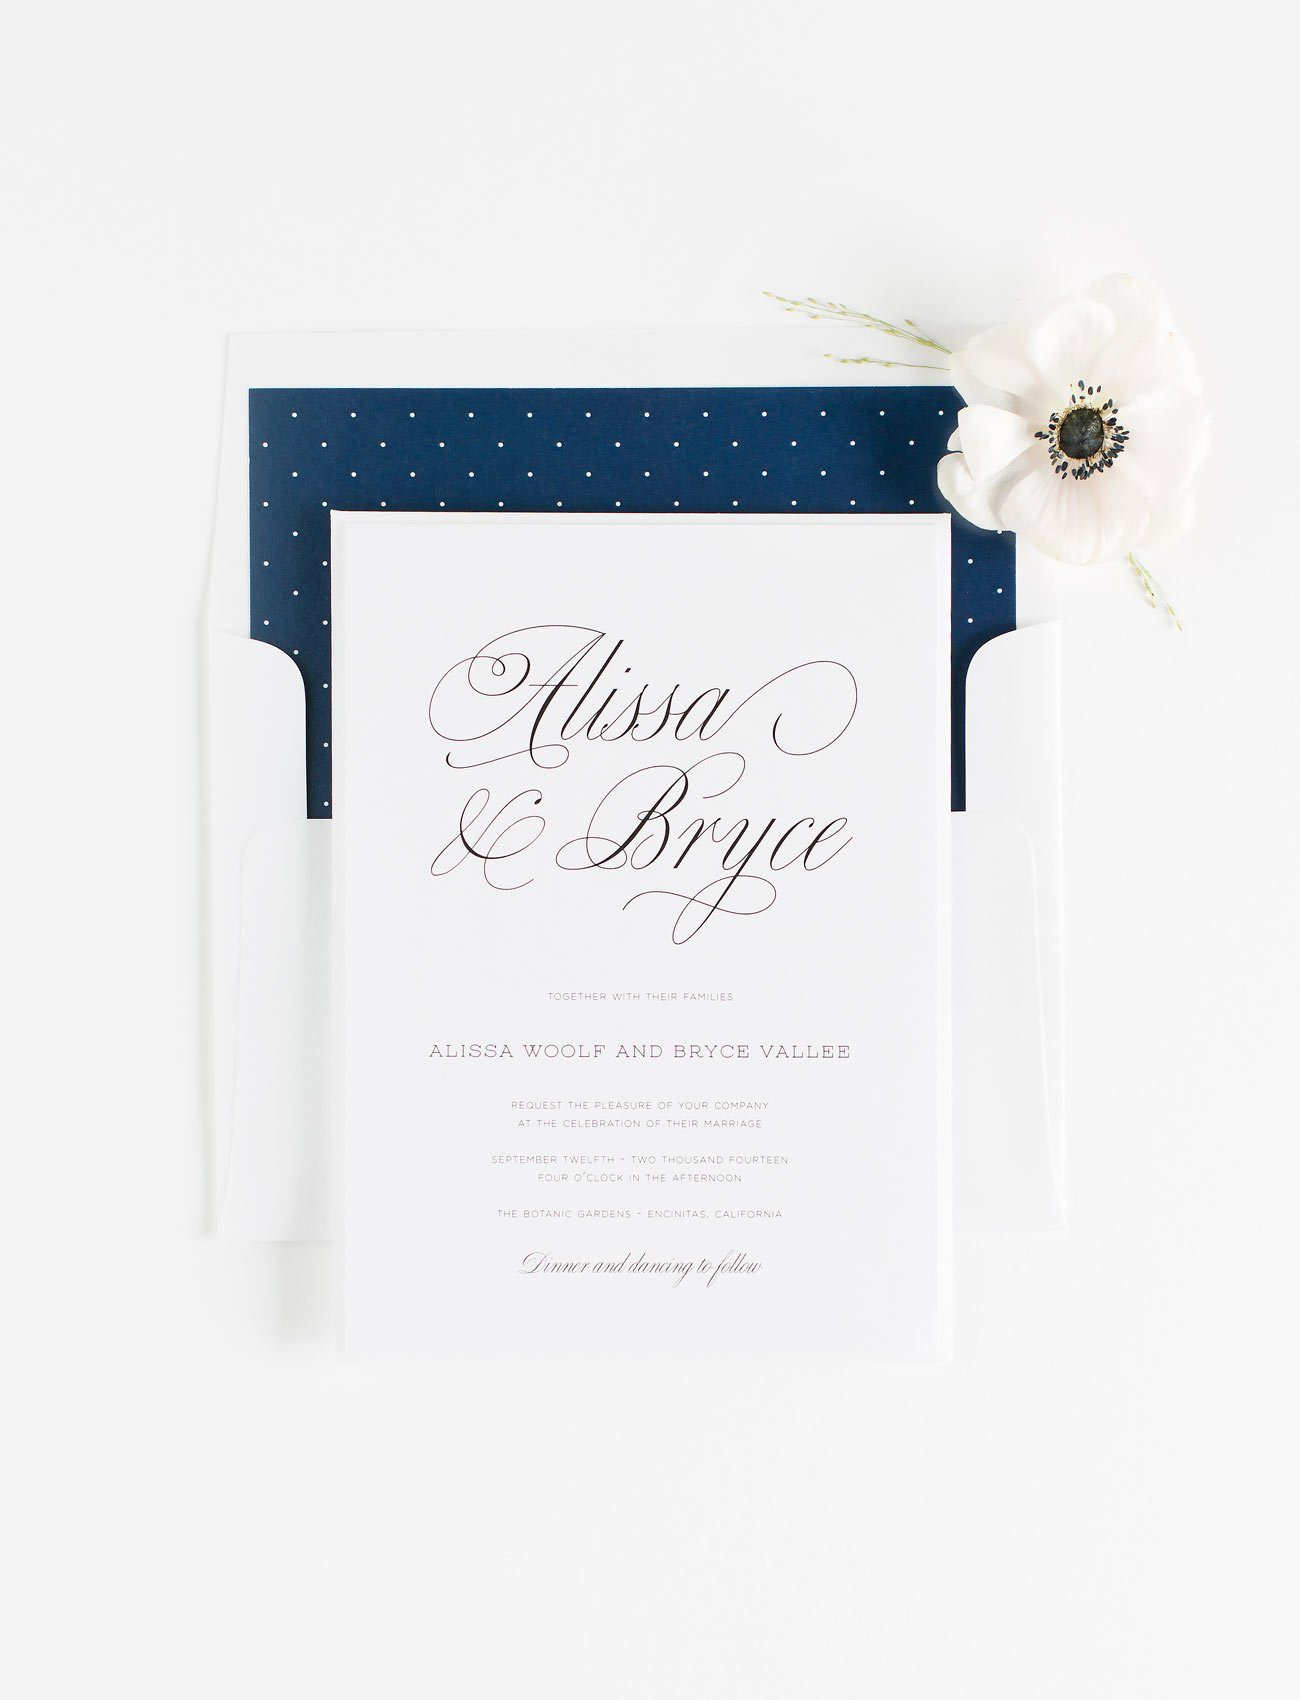 Garden Wedding Invitations in Navy Blue with a Polka Dot Envelope Liner